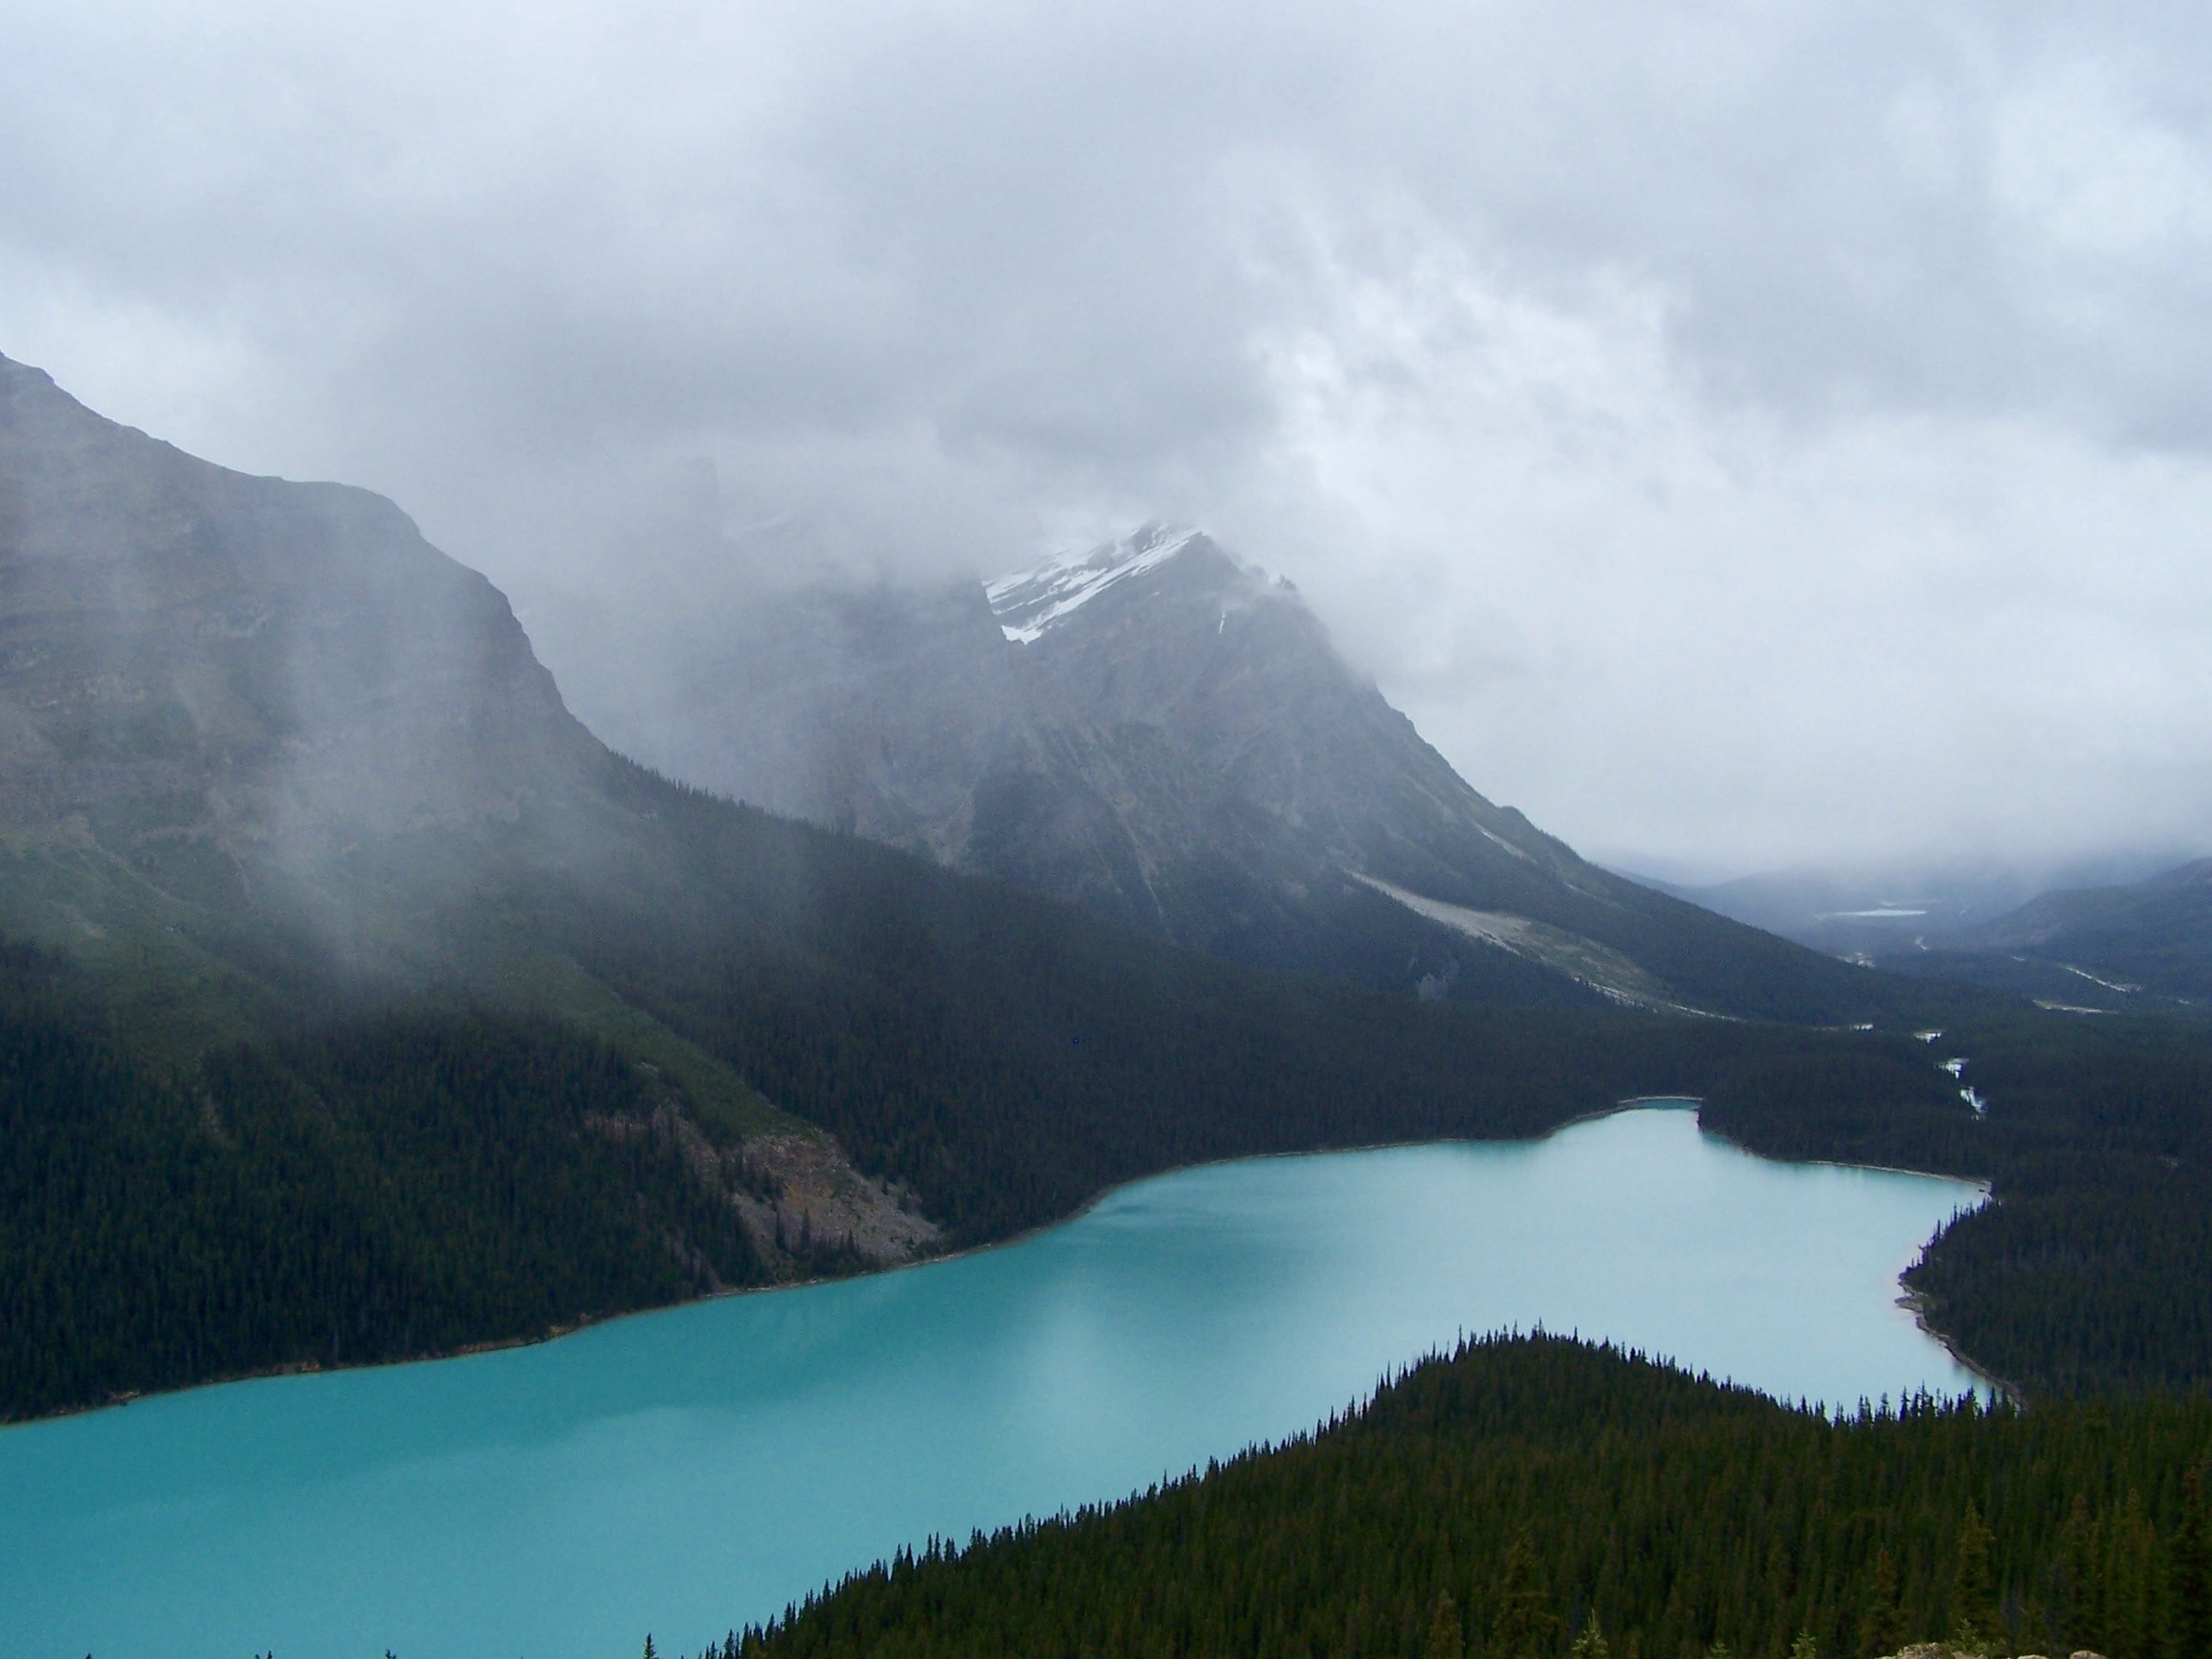 The beautiful Peyto Lake in British Columbia under gray clouds